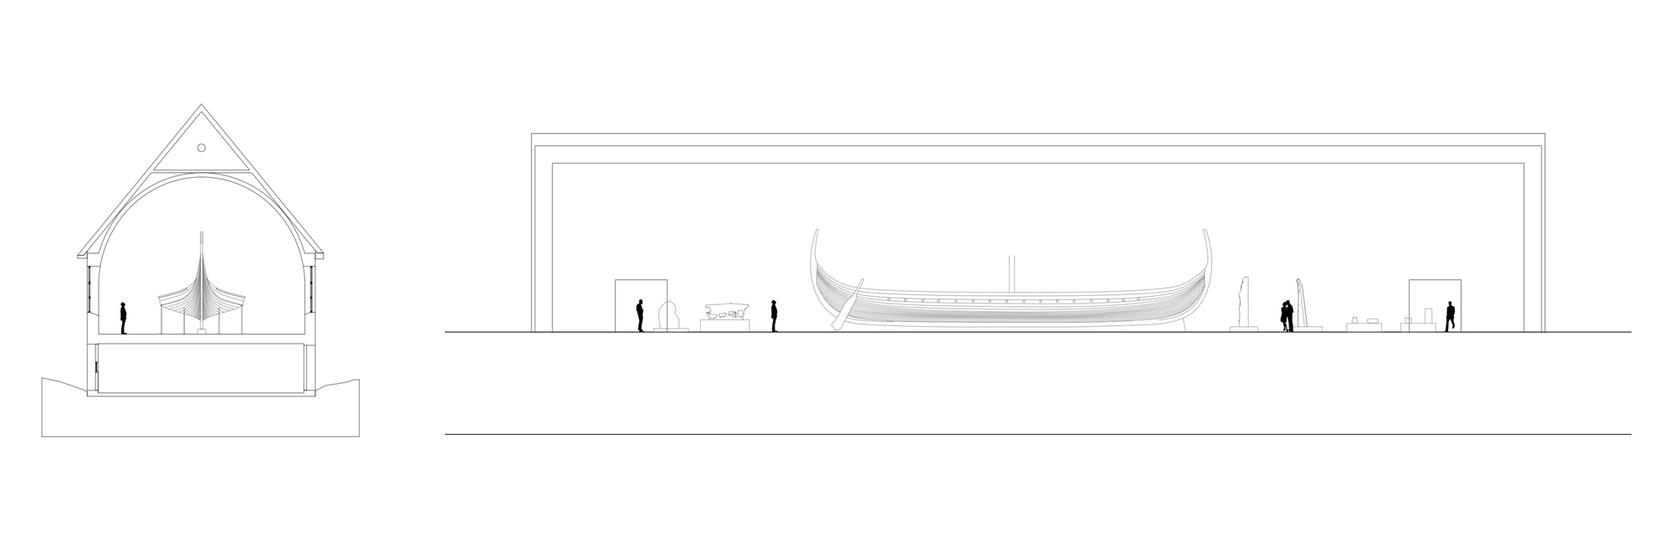 Boat section